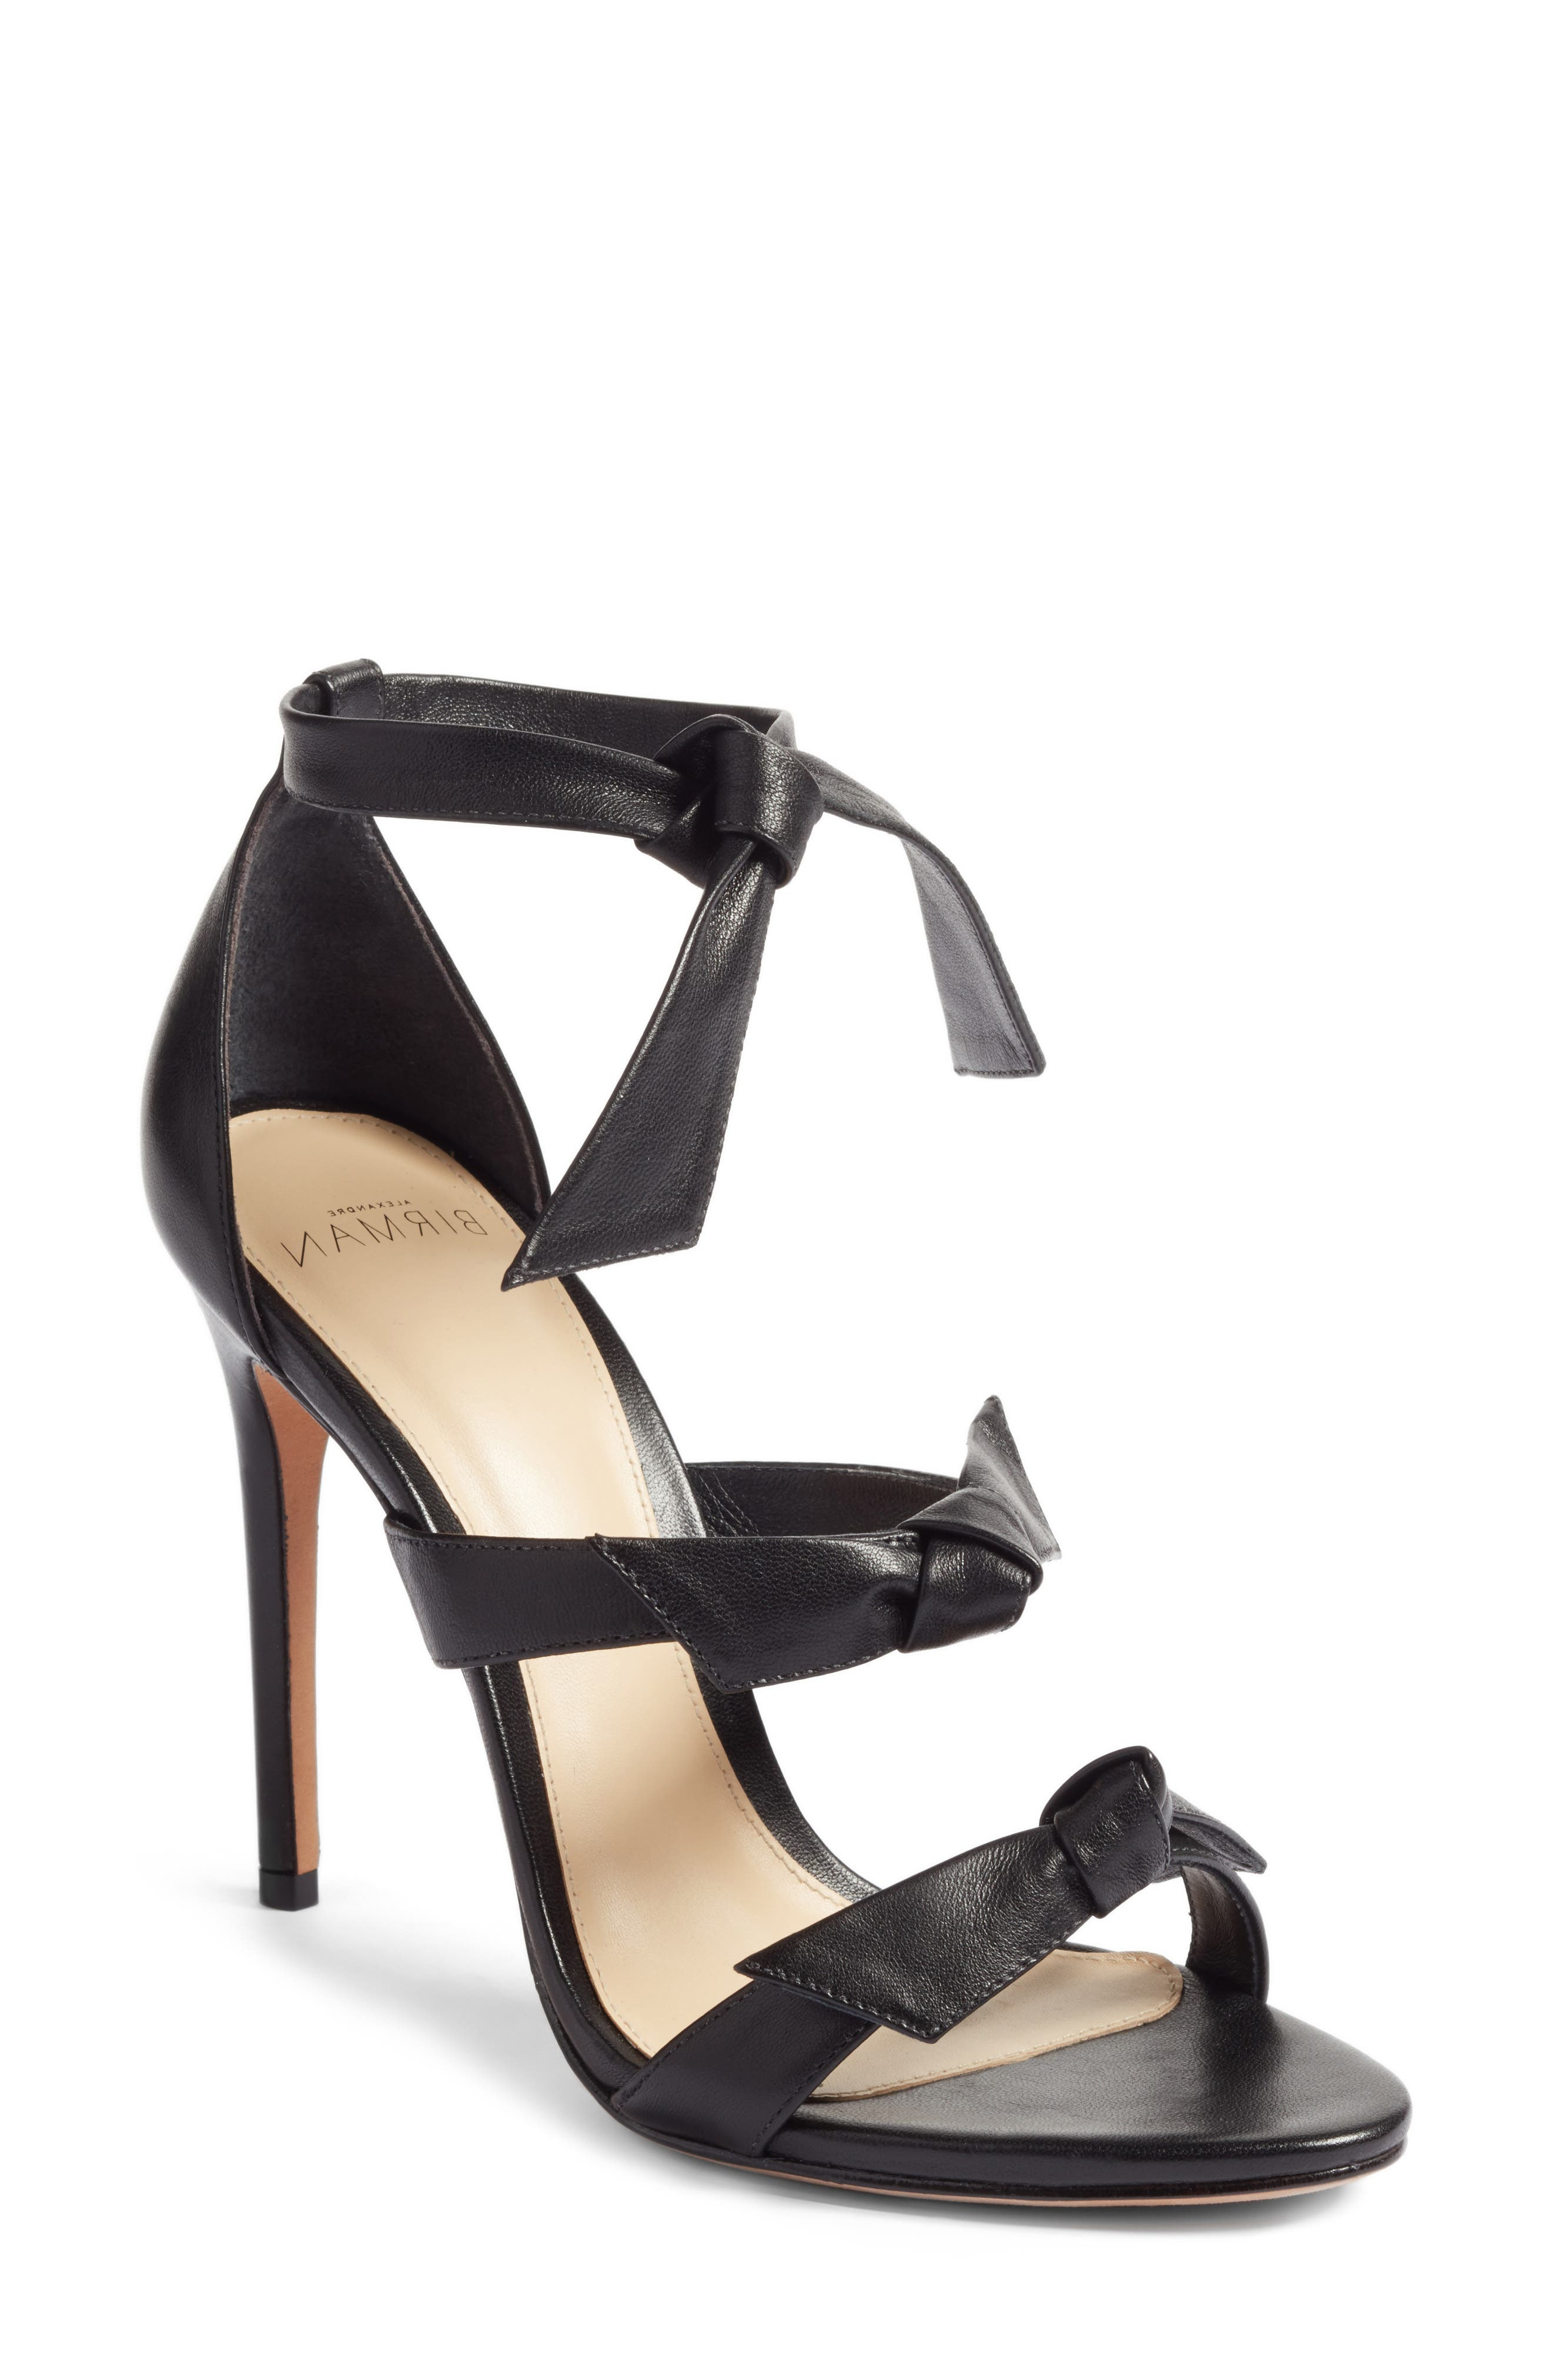 Alternate Image 1 Selected - Alexandre Birman Lolita Sandal (Women)